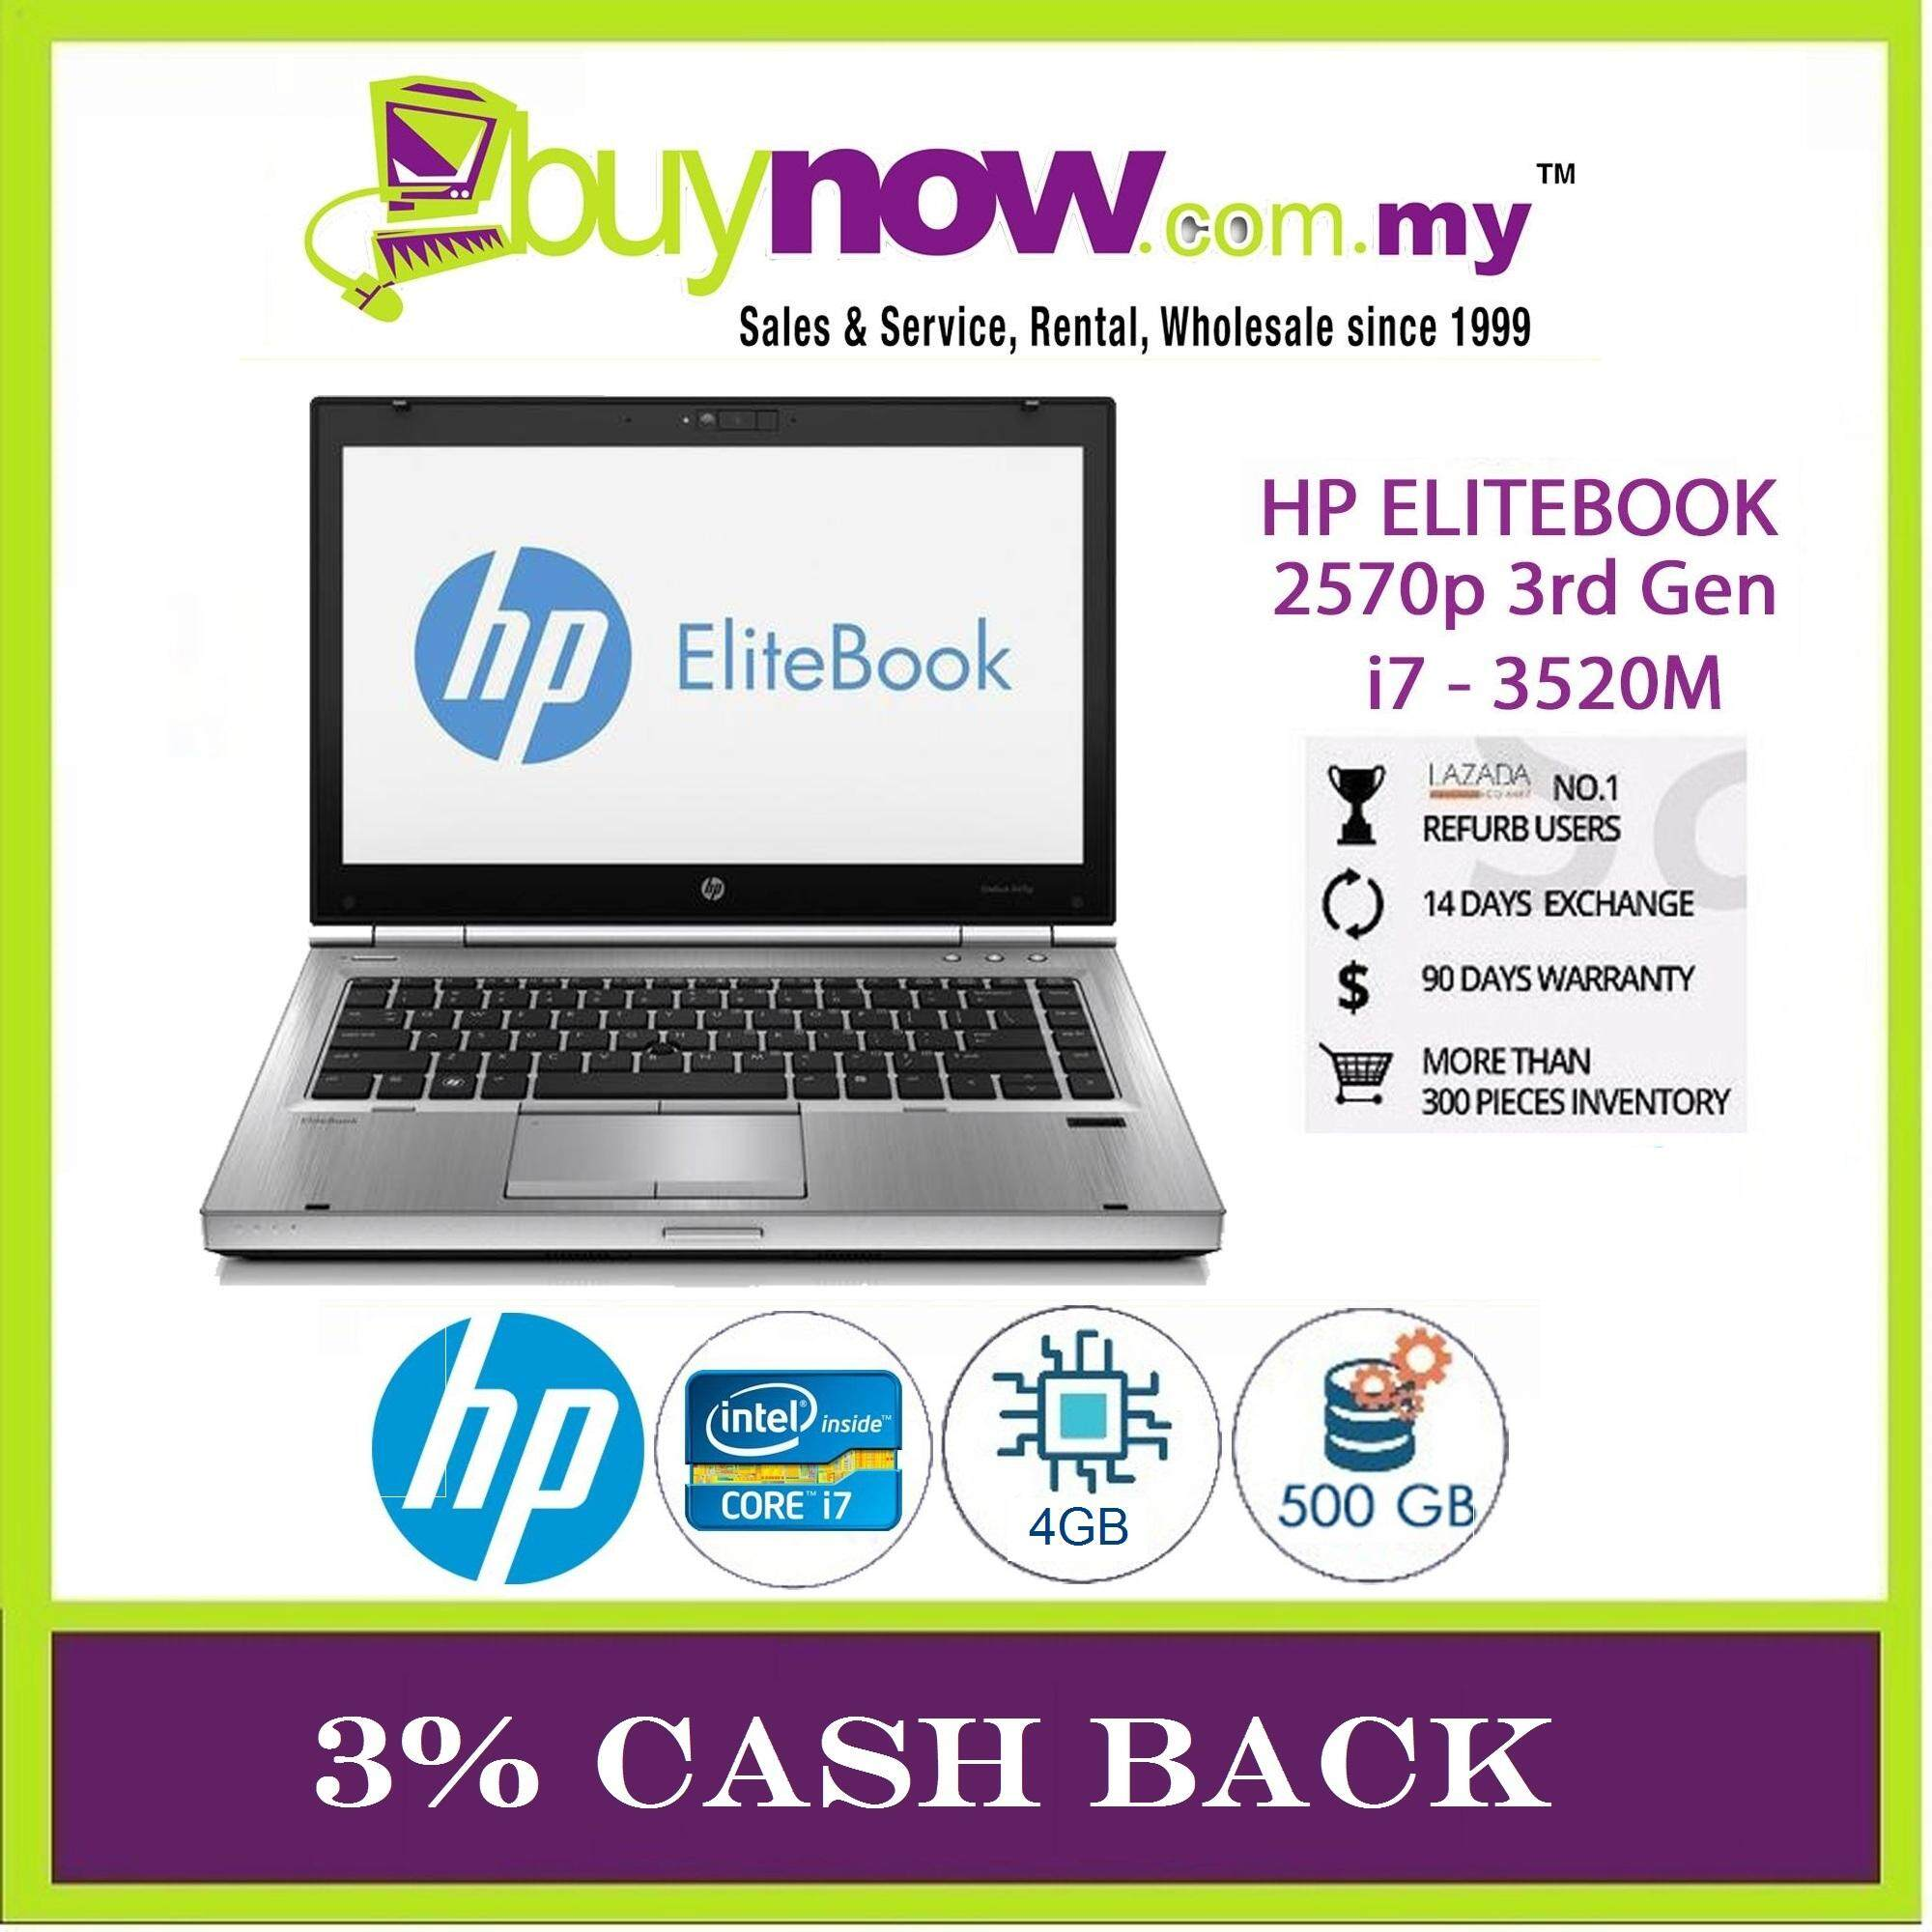 REFURBISHED LAPTOP HP ELITEBOOK 2570p 3rd Generation INTEL CORE i7 - 3520M / 4GB RAM/ 500GB HDD /  WINDOWS 7 PRO / FREE 1 YEAR BITDEFENDER TOTAL SECURITY 1 USER /FREE BAG / 3% CASHBACK. Malaysia